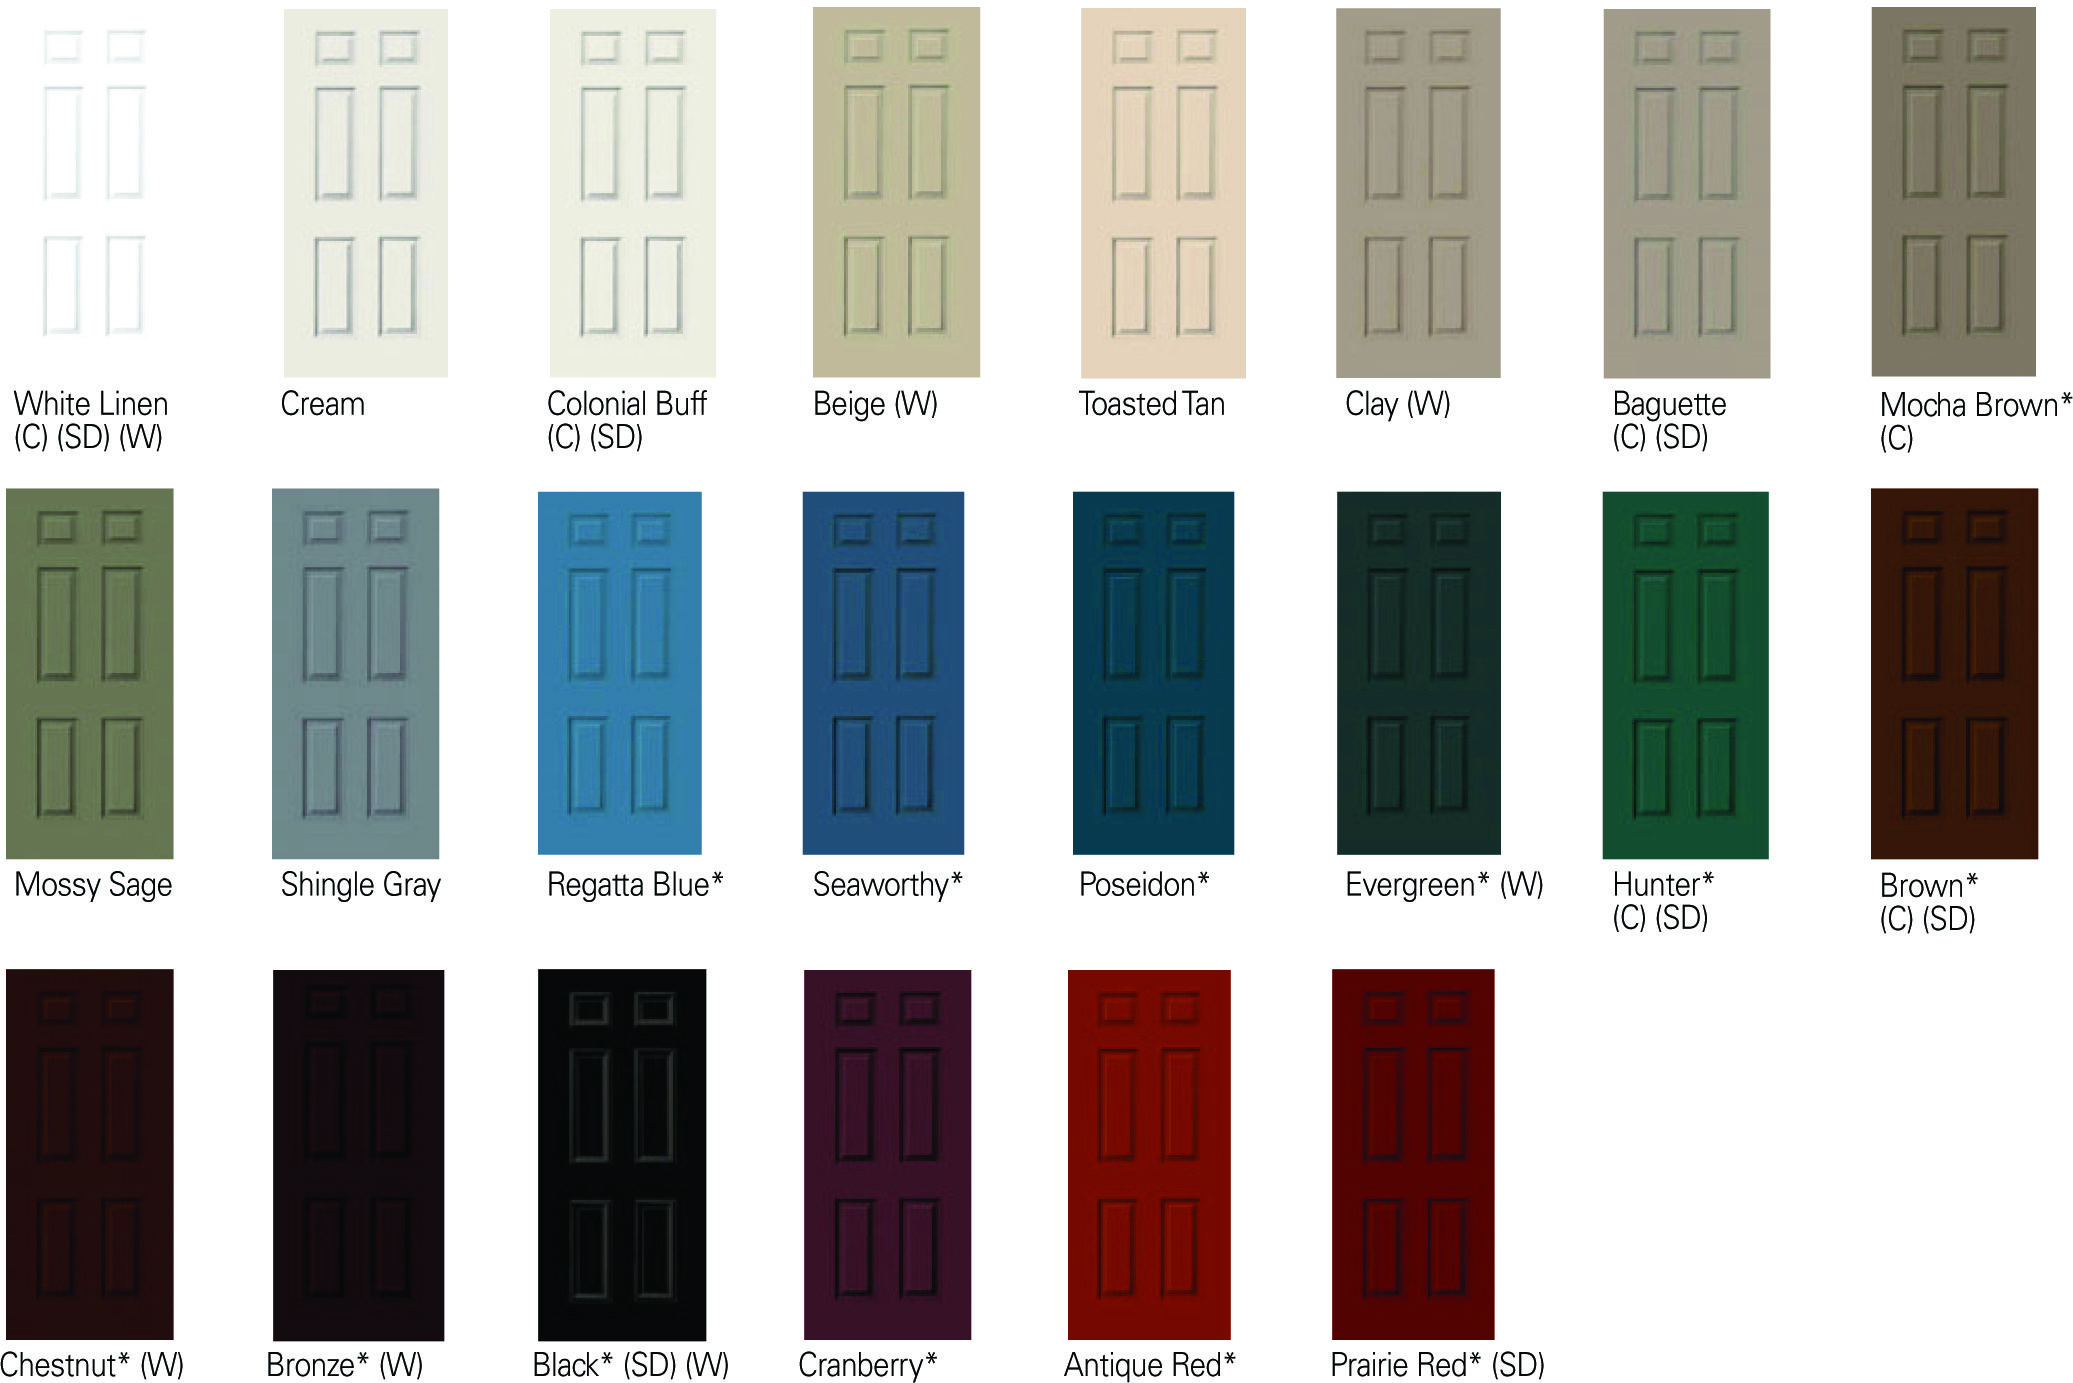 Interior paint colors clad jambs available in these color as part of the seaway select Best white paint for interior doors